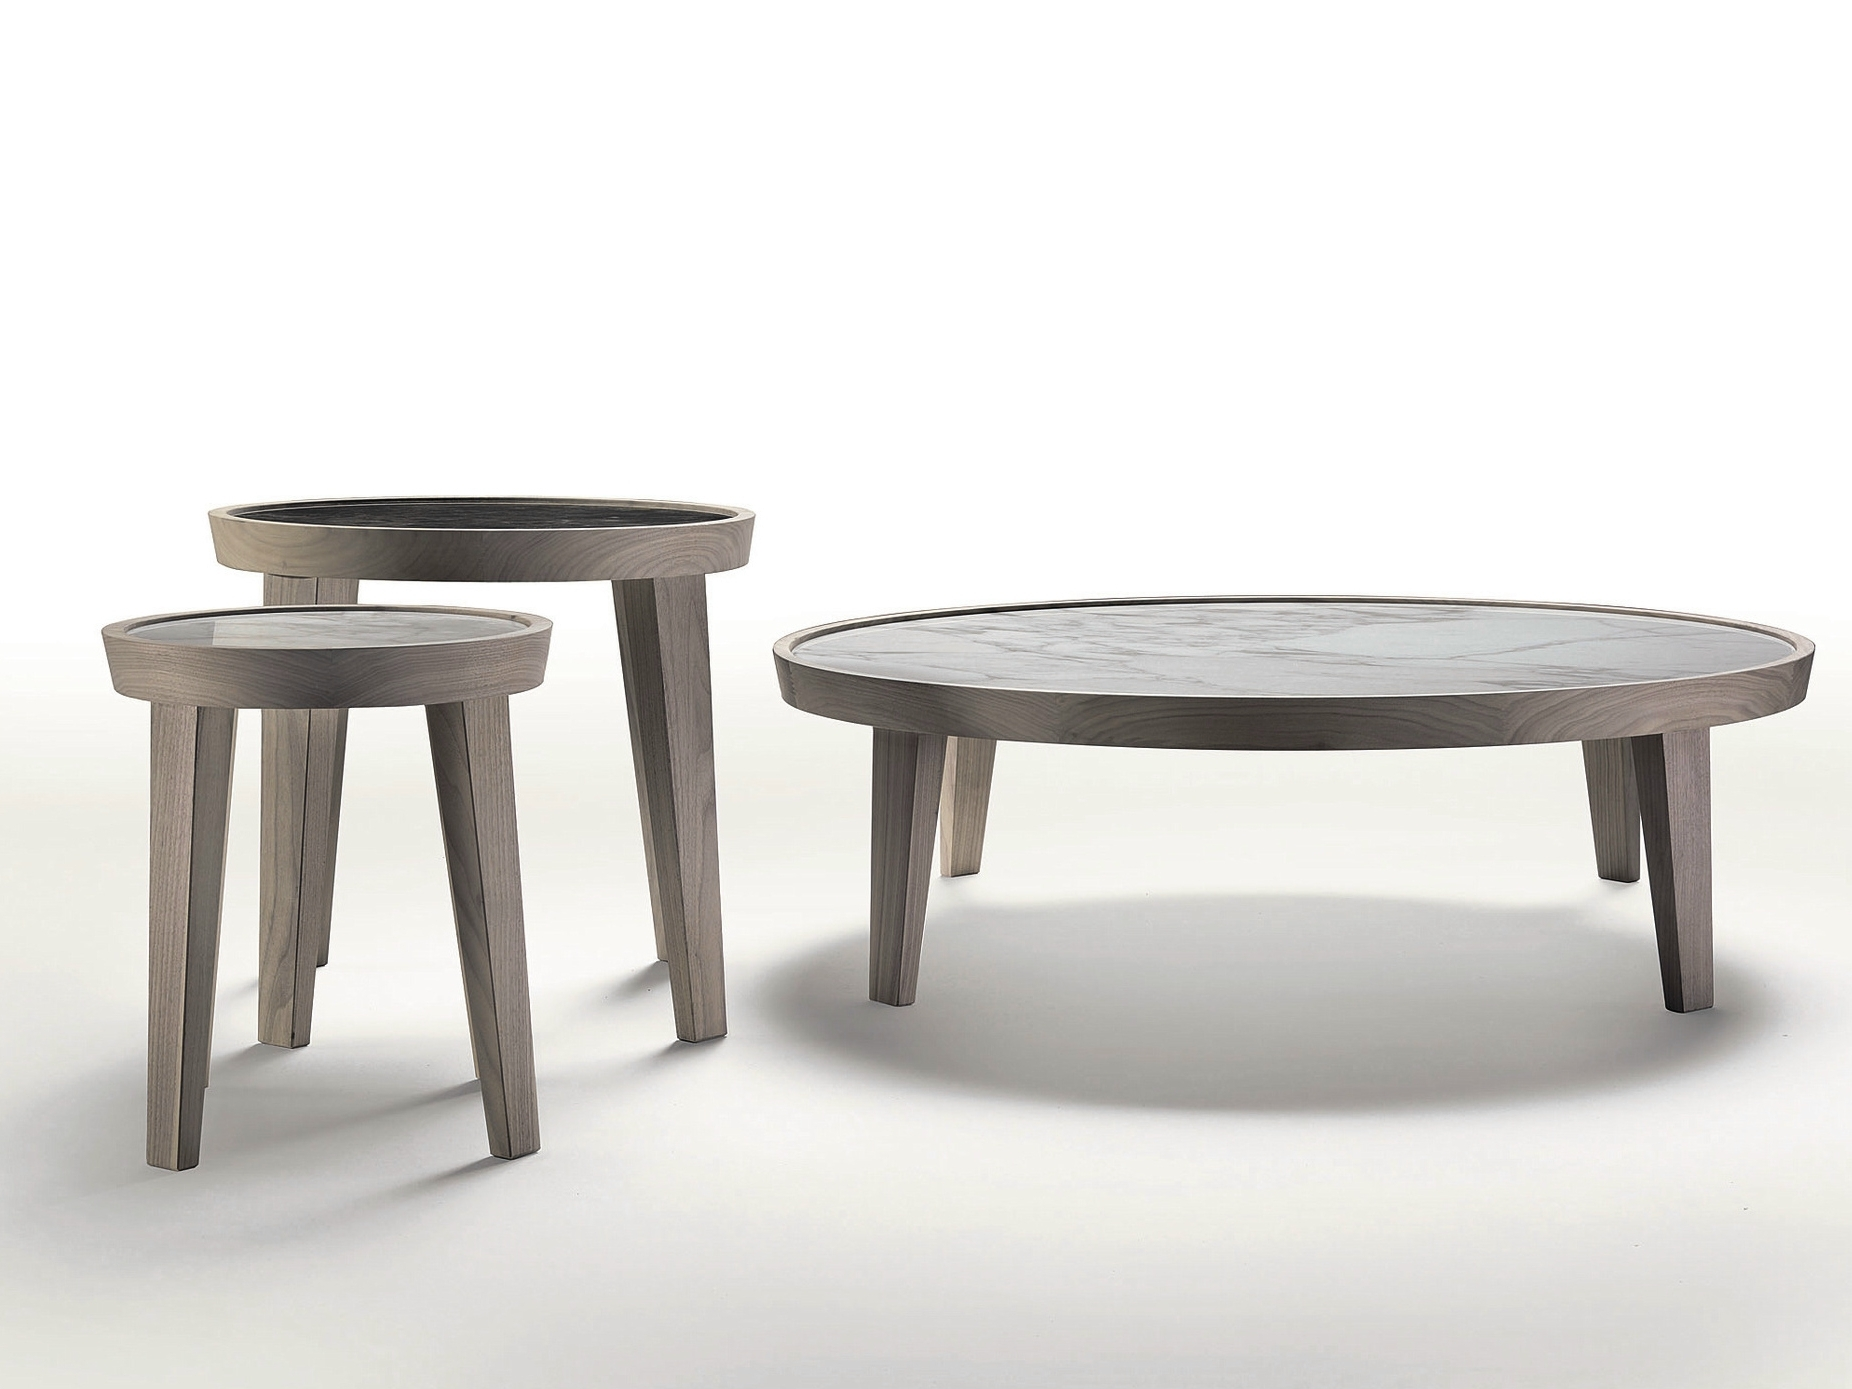 Decoration In Marble Round Coffee Table With Coffee Table Smart Within Newest Smart Large Round Marble Top Coffee Tables (View 9 of 20)